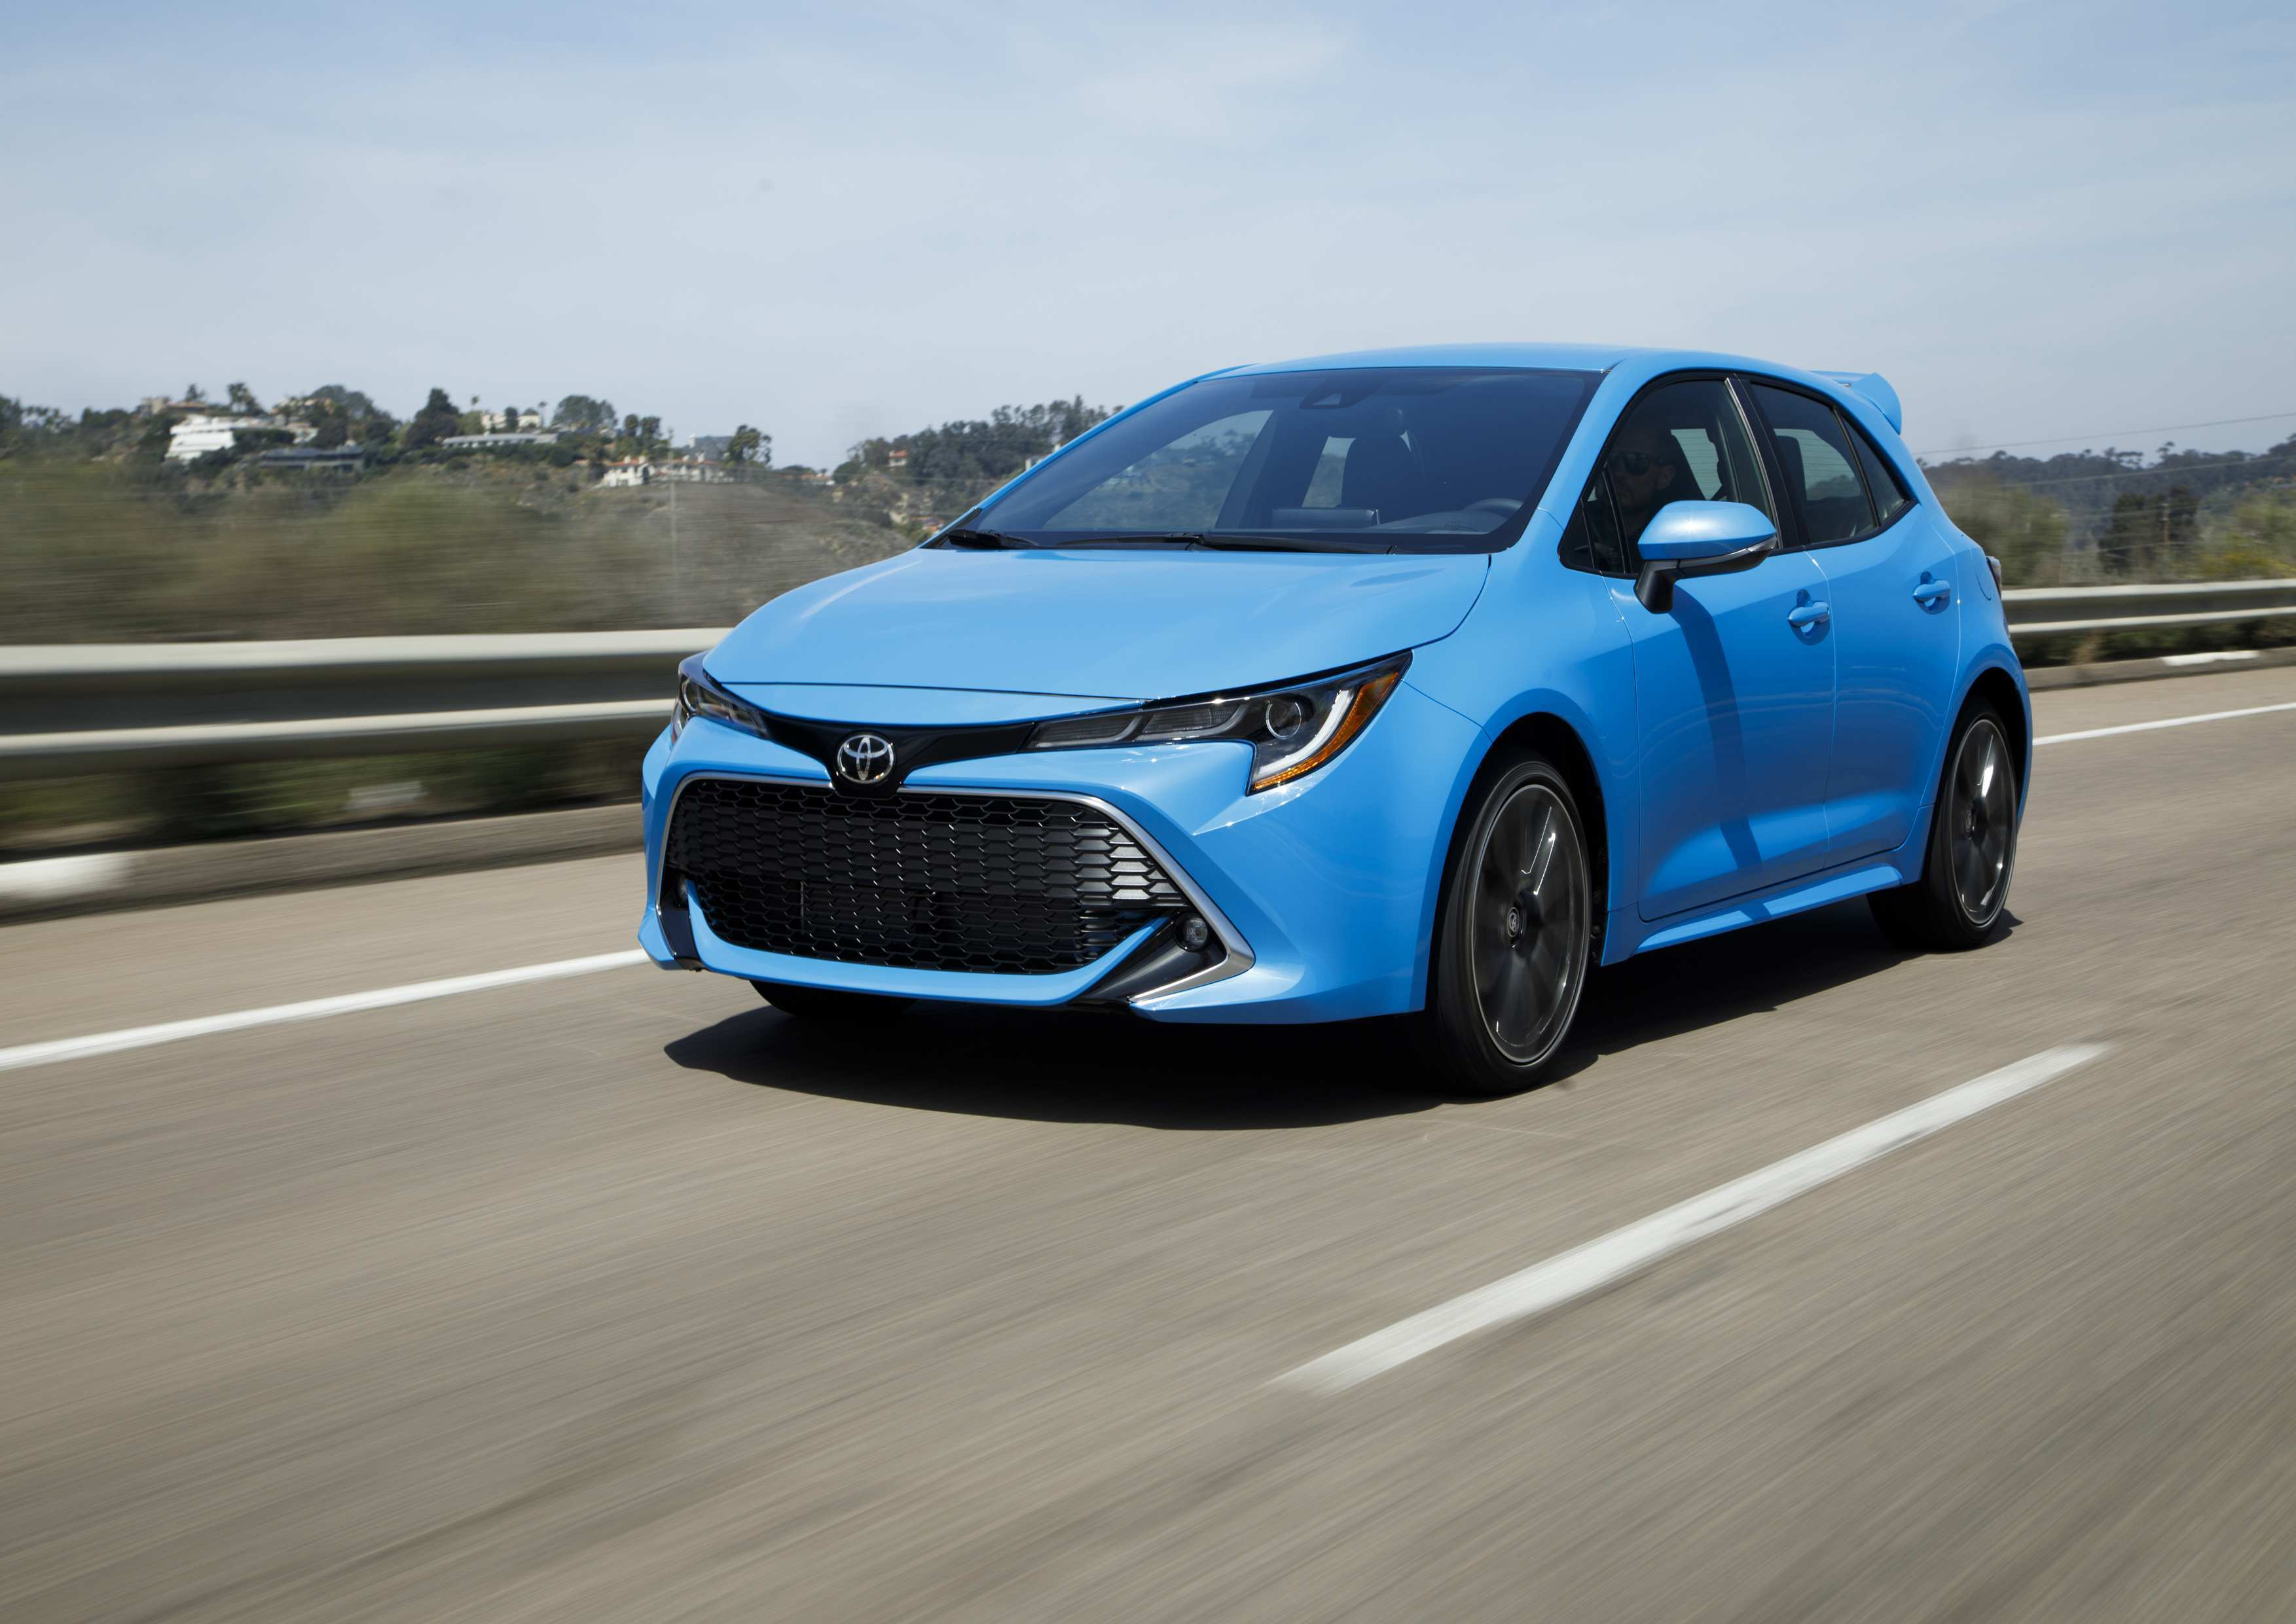 32 Concept of 2019 Toyota Corolla Hatchback Review Price by 2019 Toyota Corolla Hatchback Review